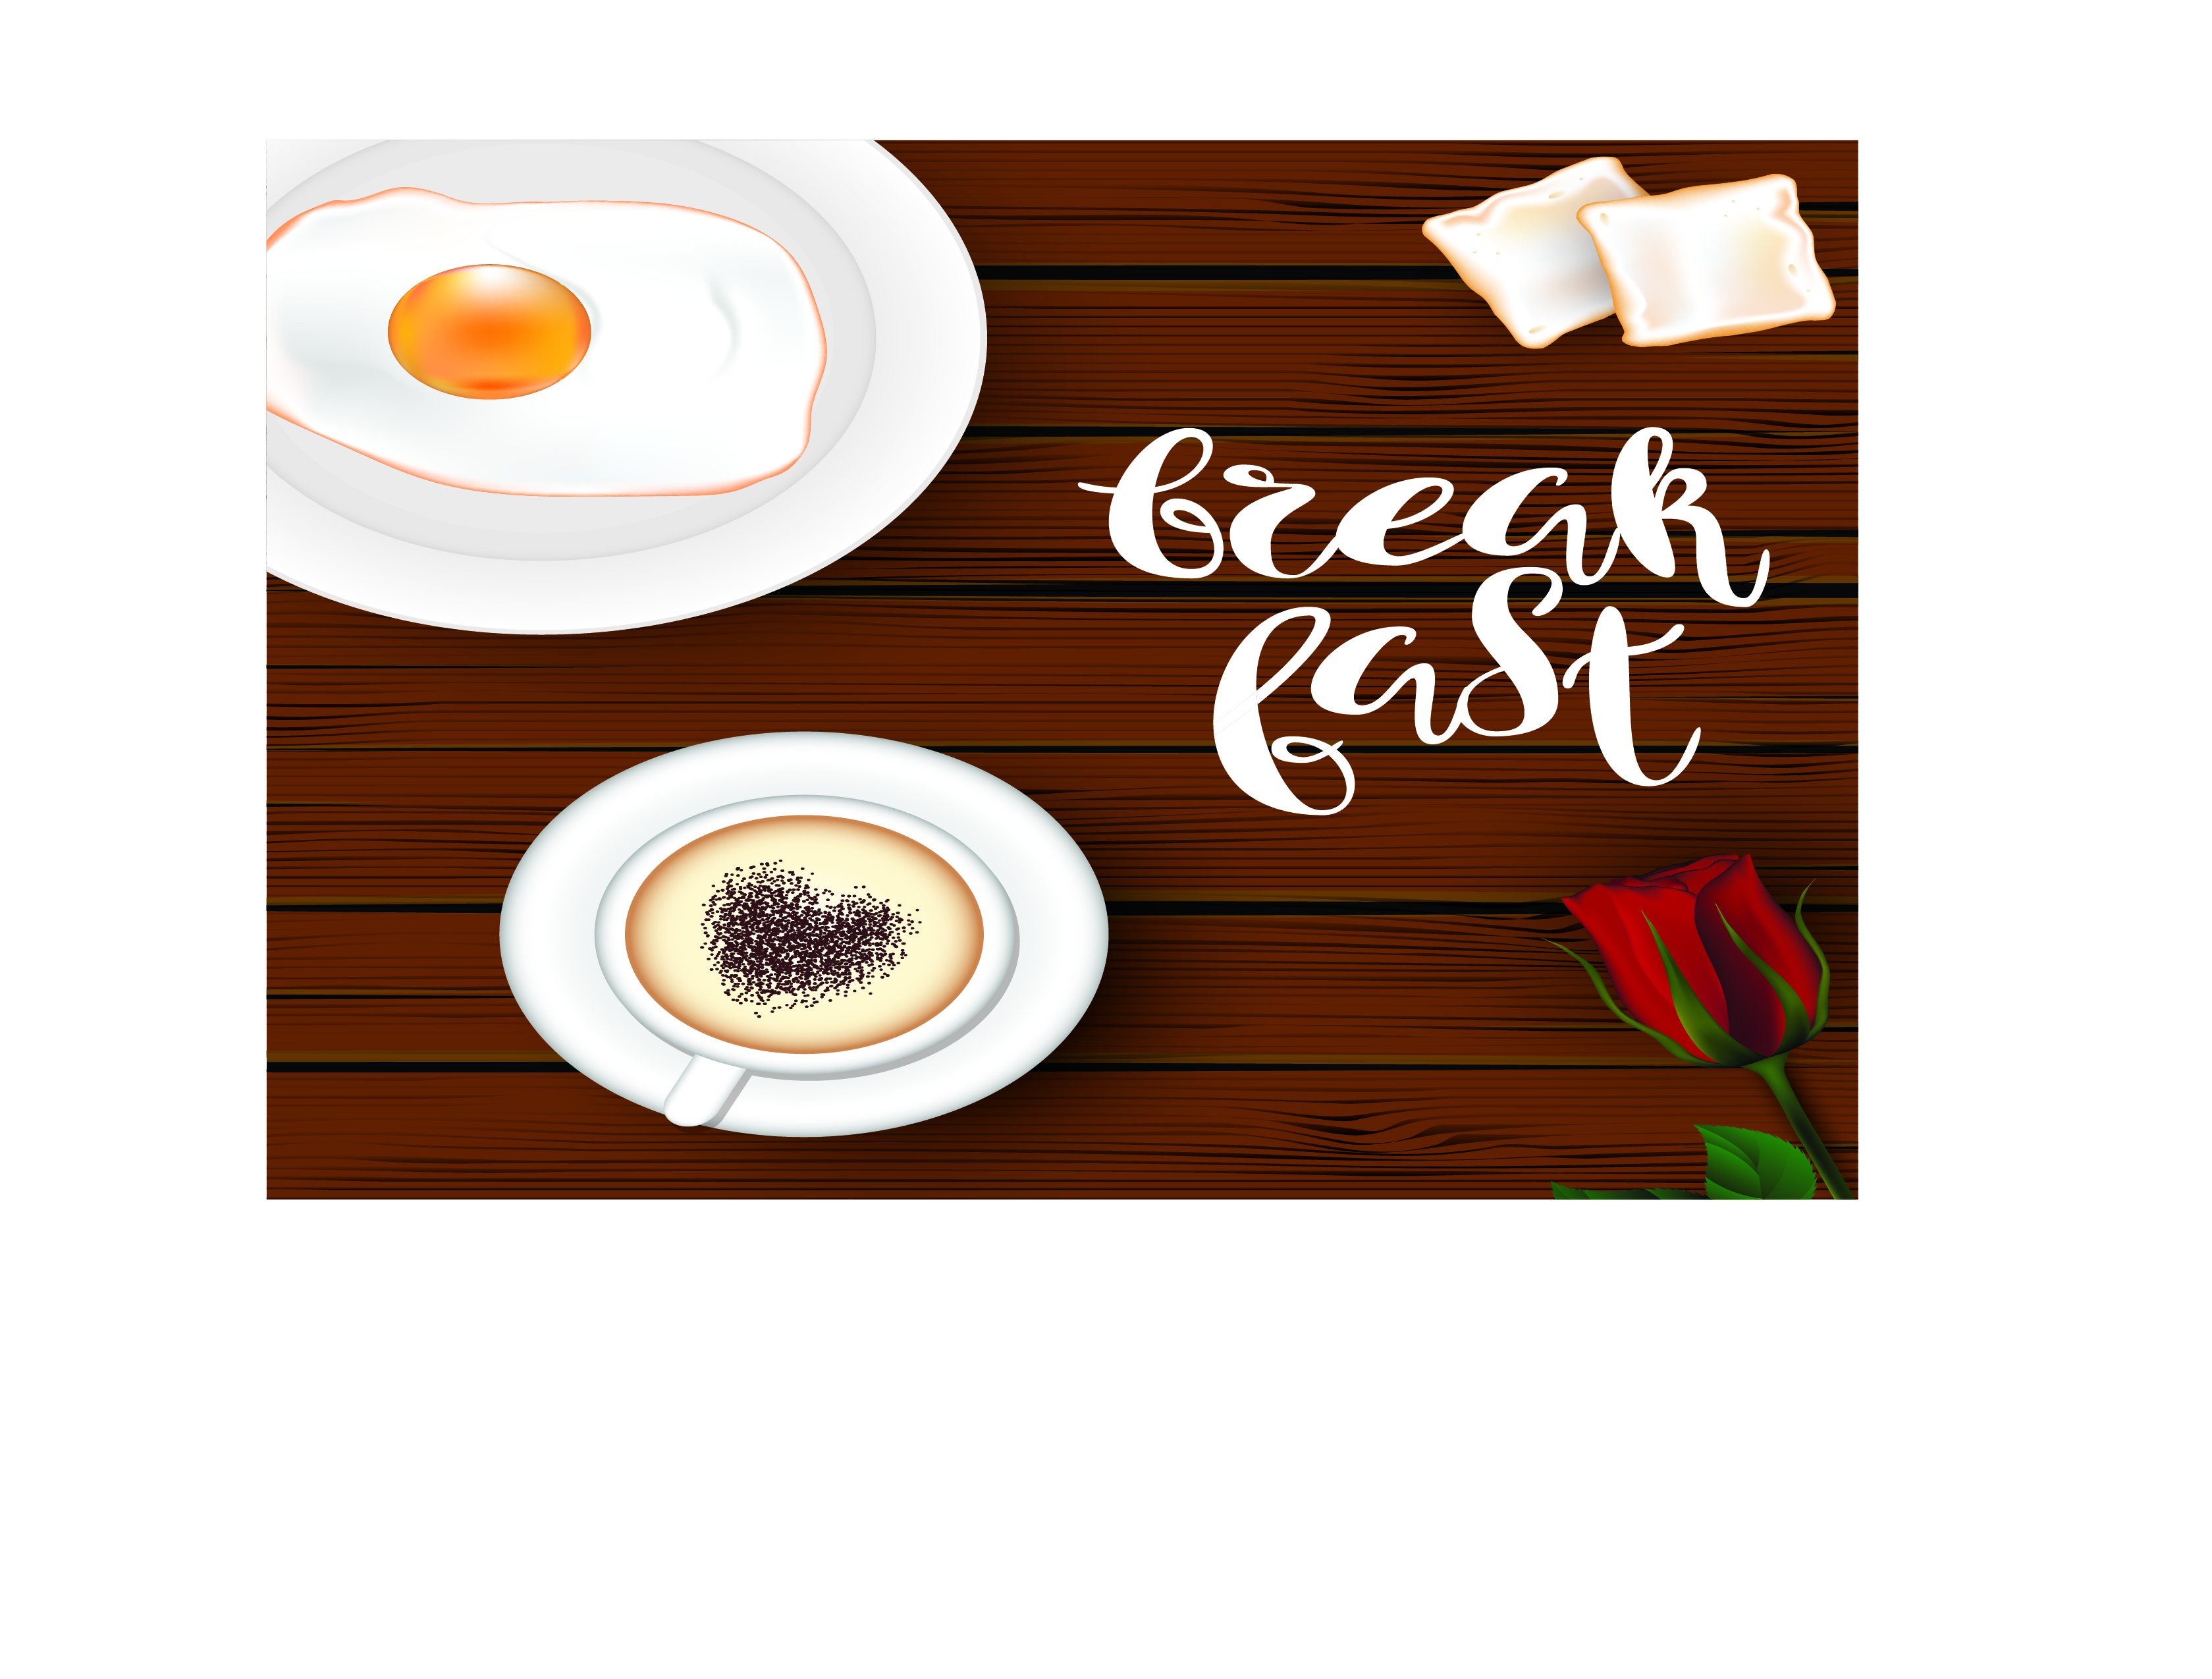 Download Free Breakfast Graphich Breakfast Silhouette Studio Cricut Graphic for Cricut Explore, Silhouette and other cutting machines.